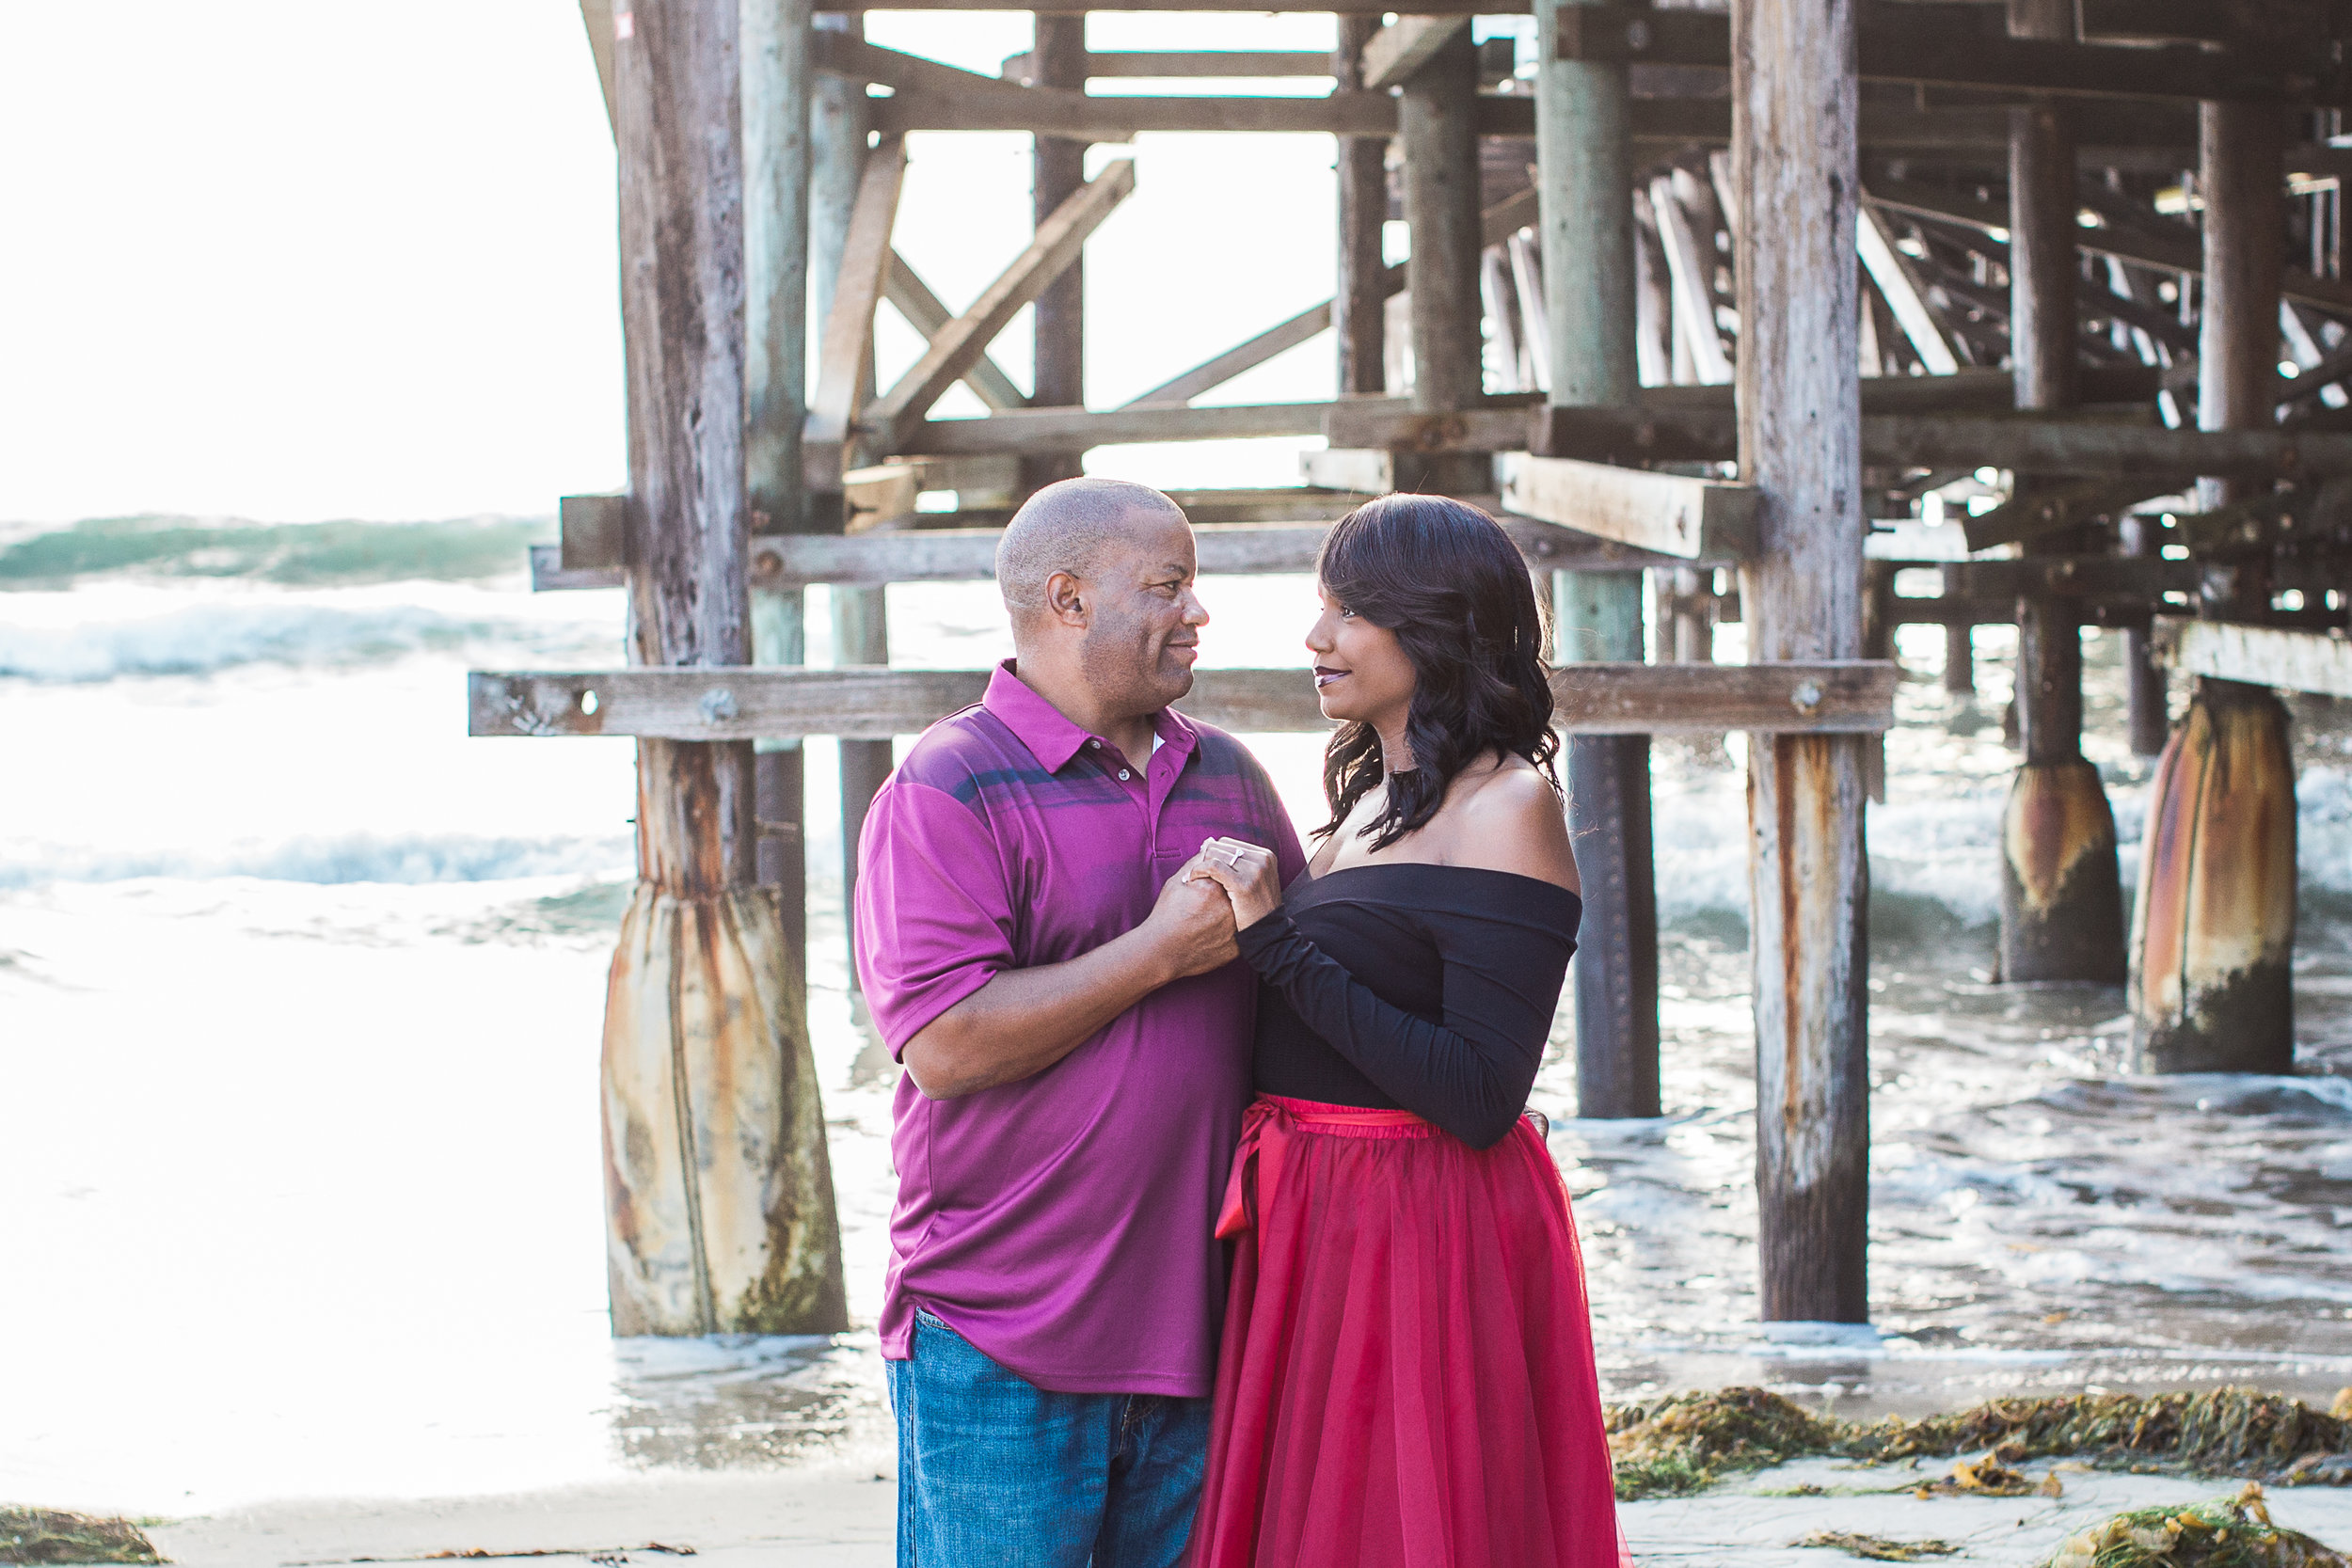 san-diego-wedding-photographer-beach-engagement-session-so-cal-pier